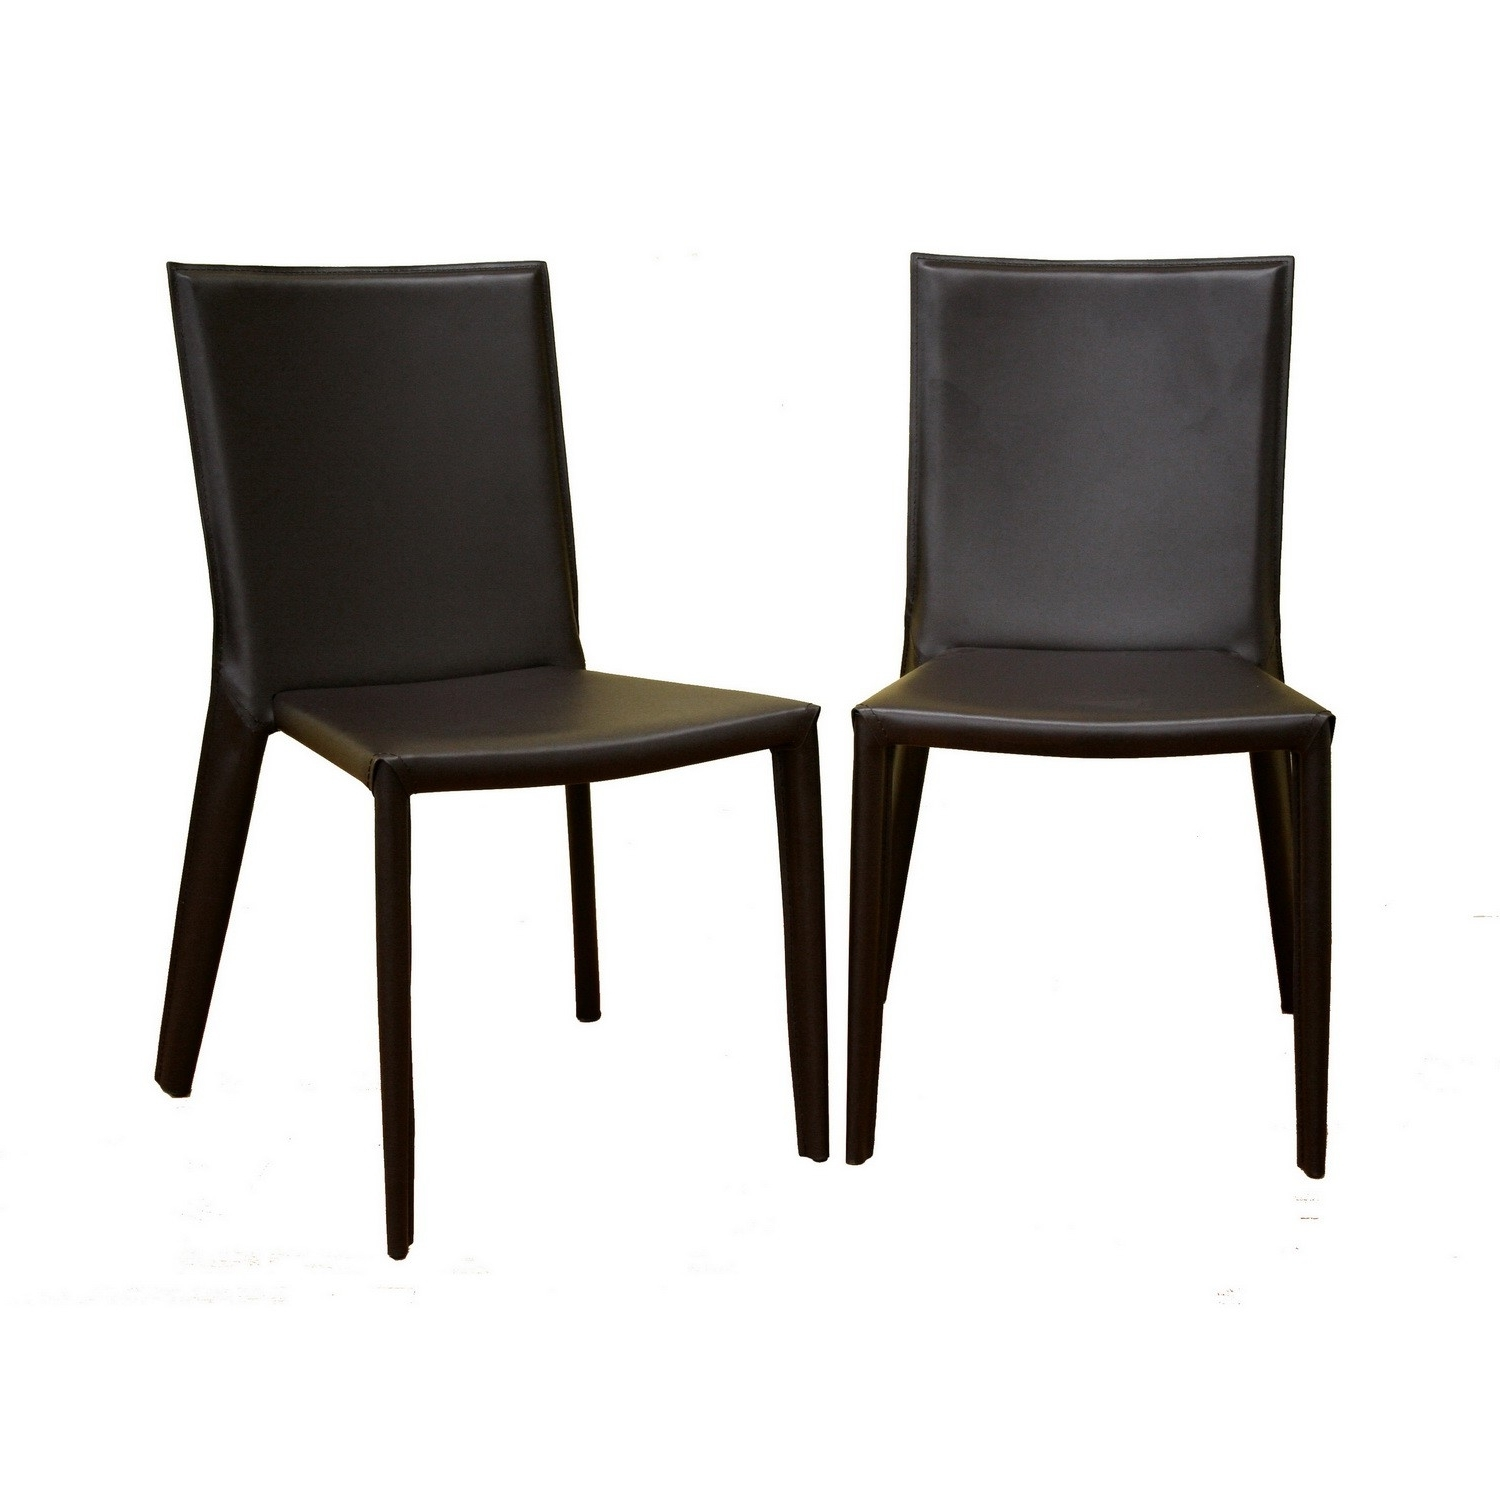 Dark Brown Leather Dining Chairs for Trendy Semele Dark Brown Leather Dining Chair